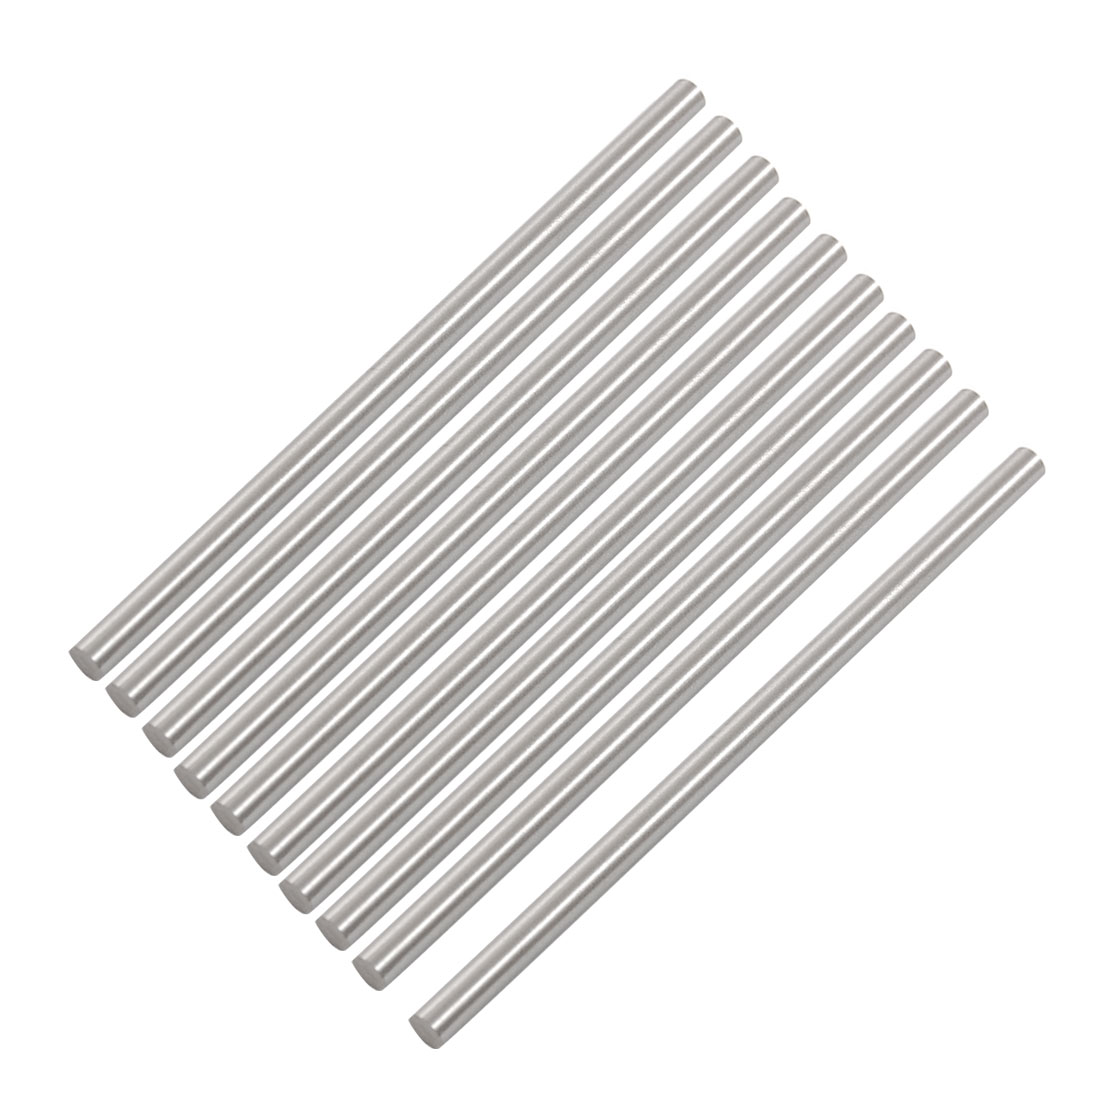 Unique Bargains 10x HSS High Speed Steel Round Turning Lathe Bars 4.5mm x 100mm by Unique-Bargains